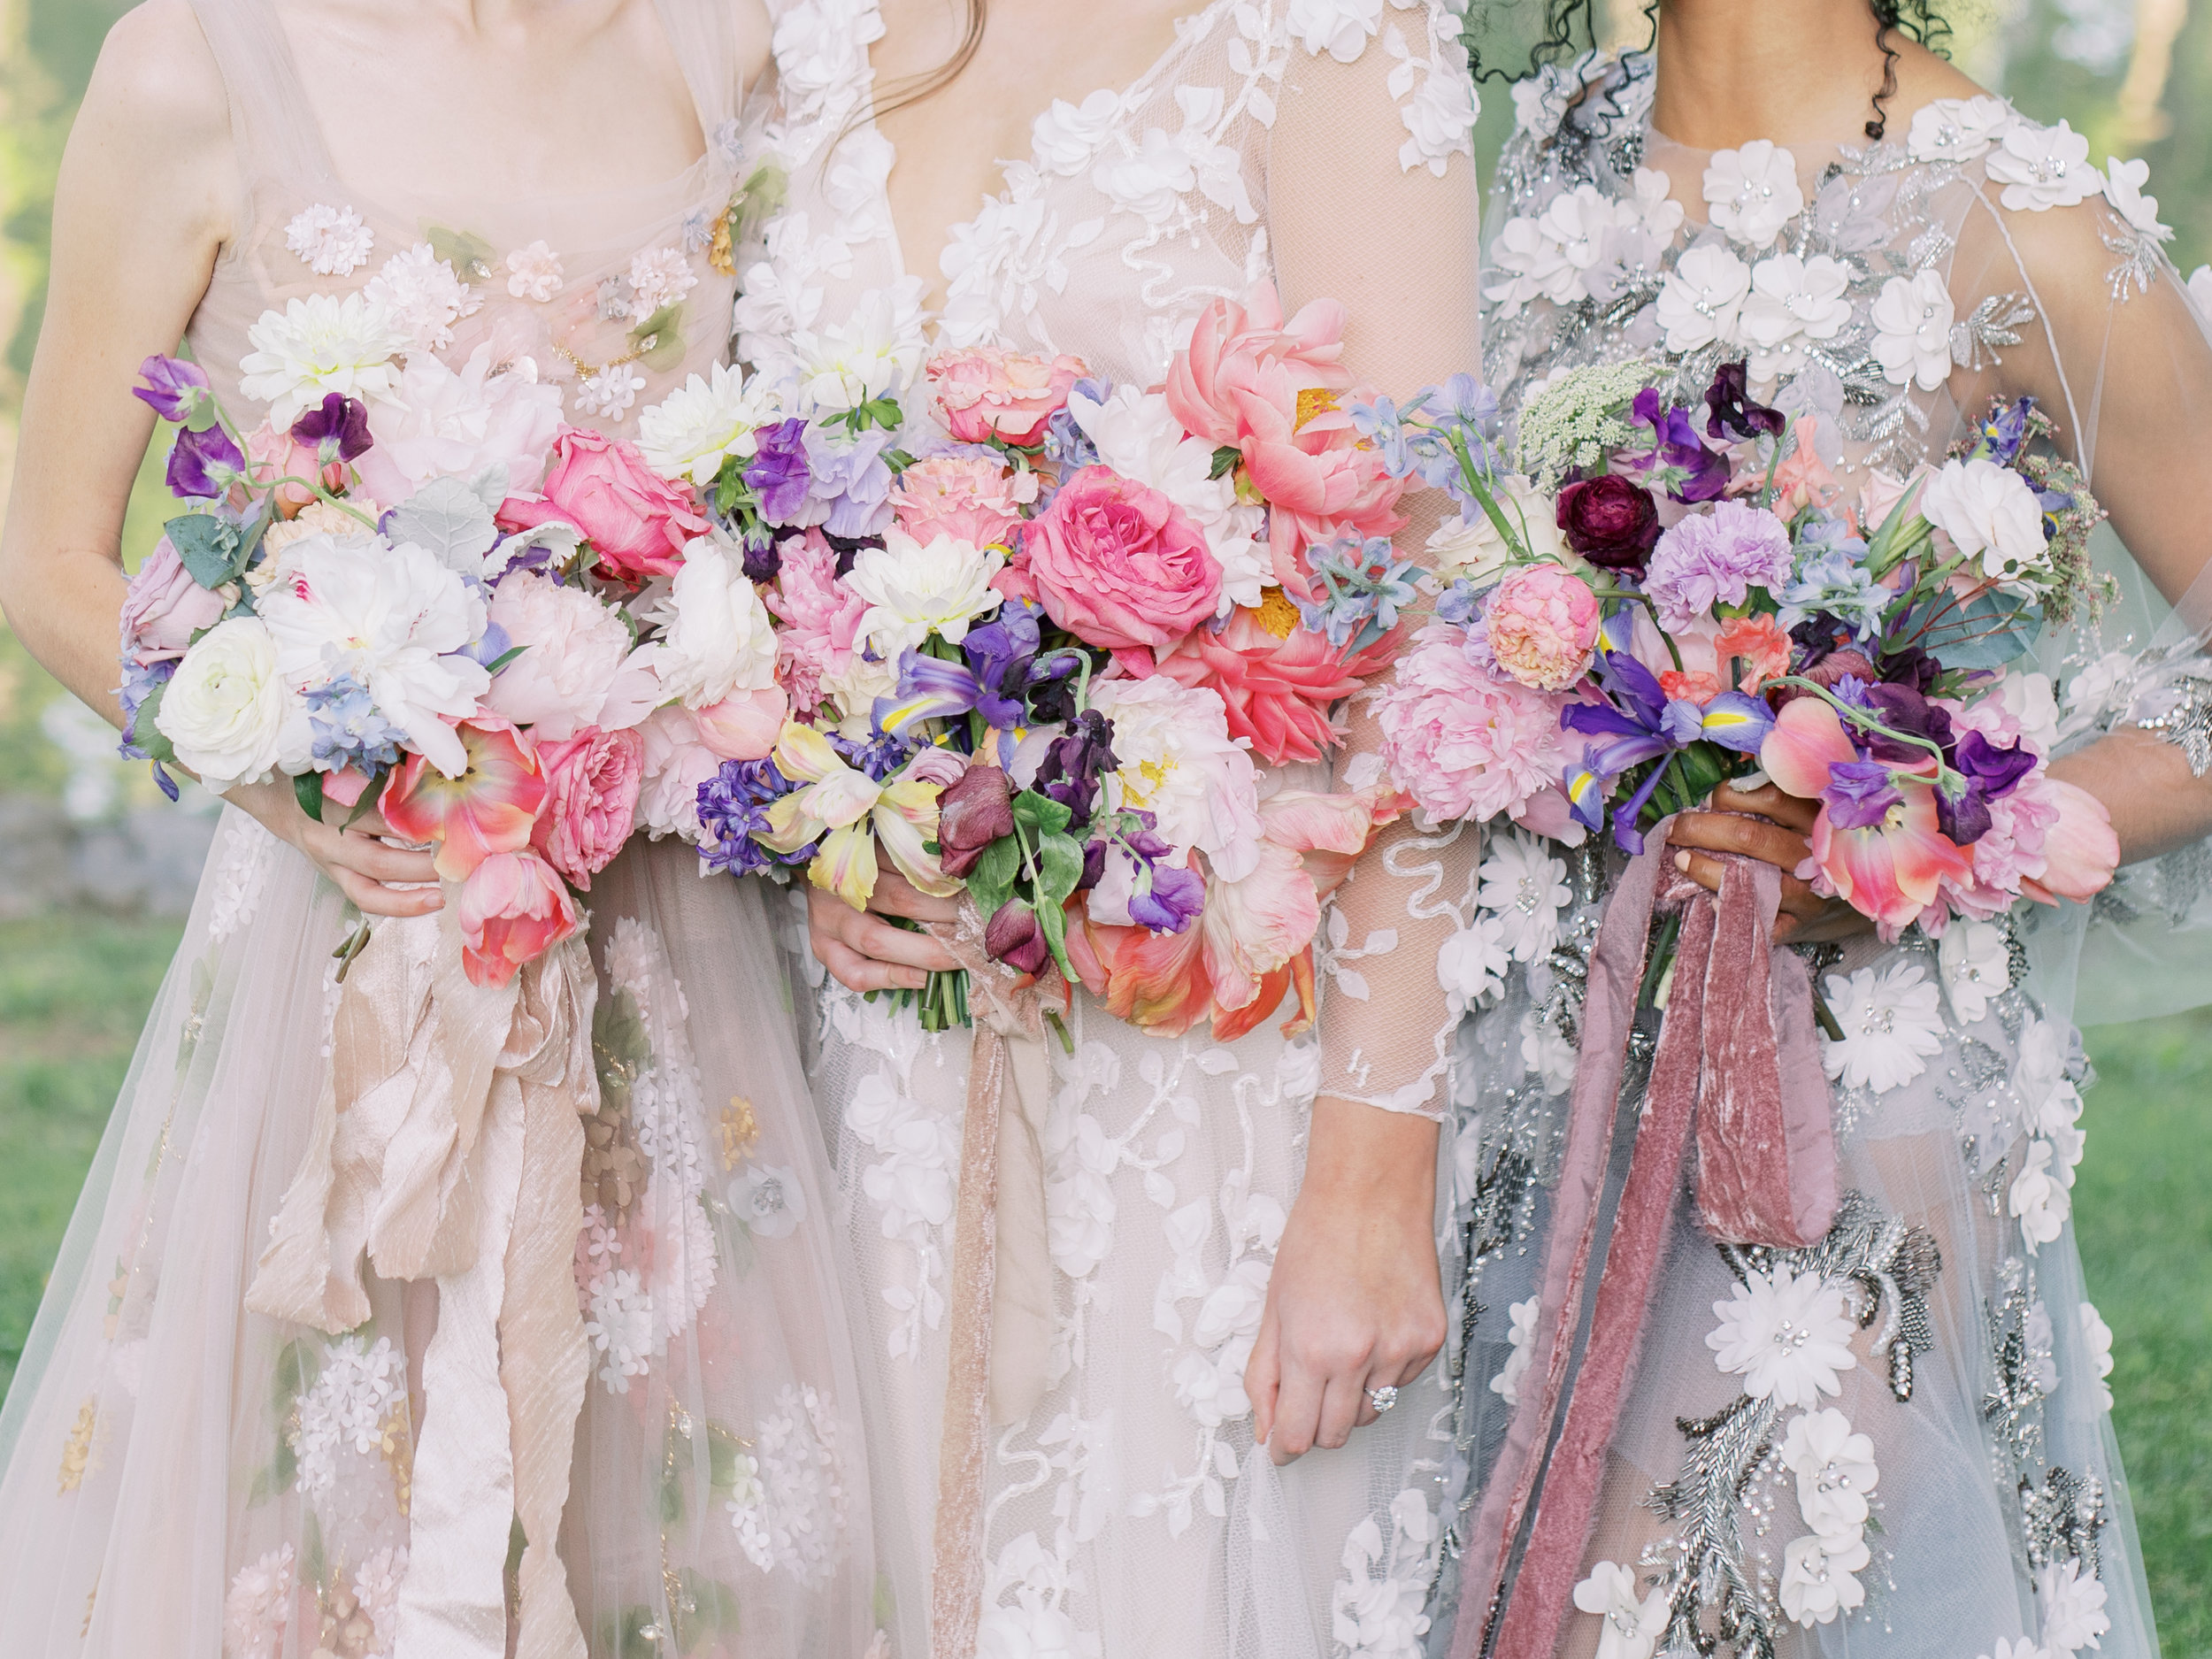 Faith Roper Photography and East Made Co Nashville wedding planner at the Estate at Cherokee Dock wedding inspired by Monet Hybrid Co-74.jpg